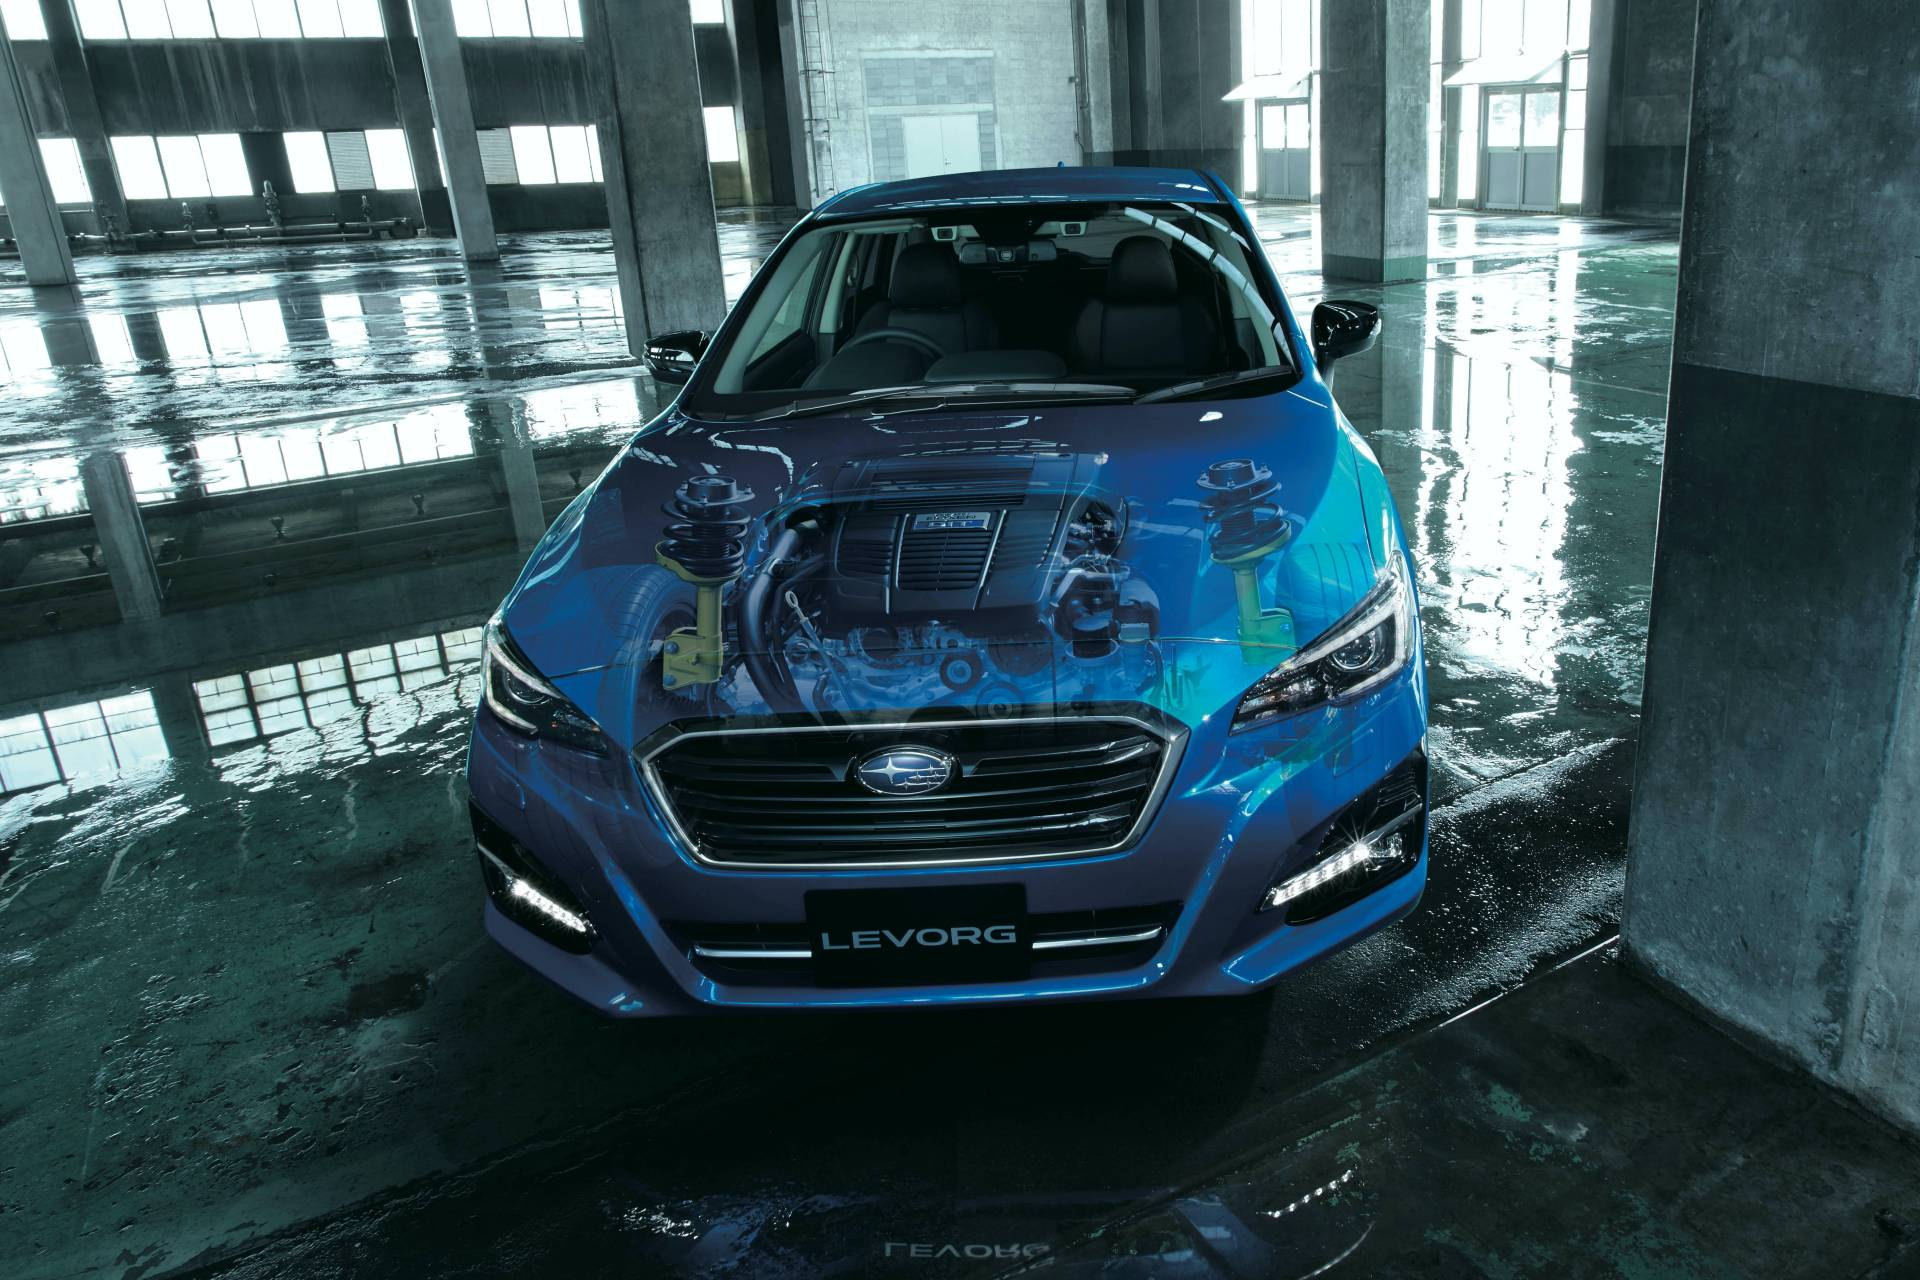 Subaru-Levorg-2.0GT-EyeSight-V-Sport-5